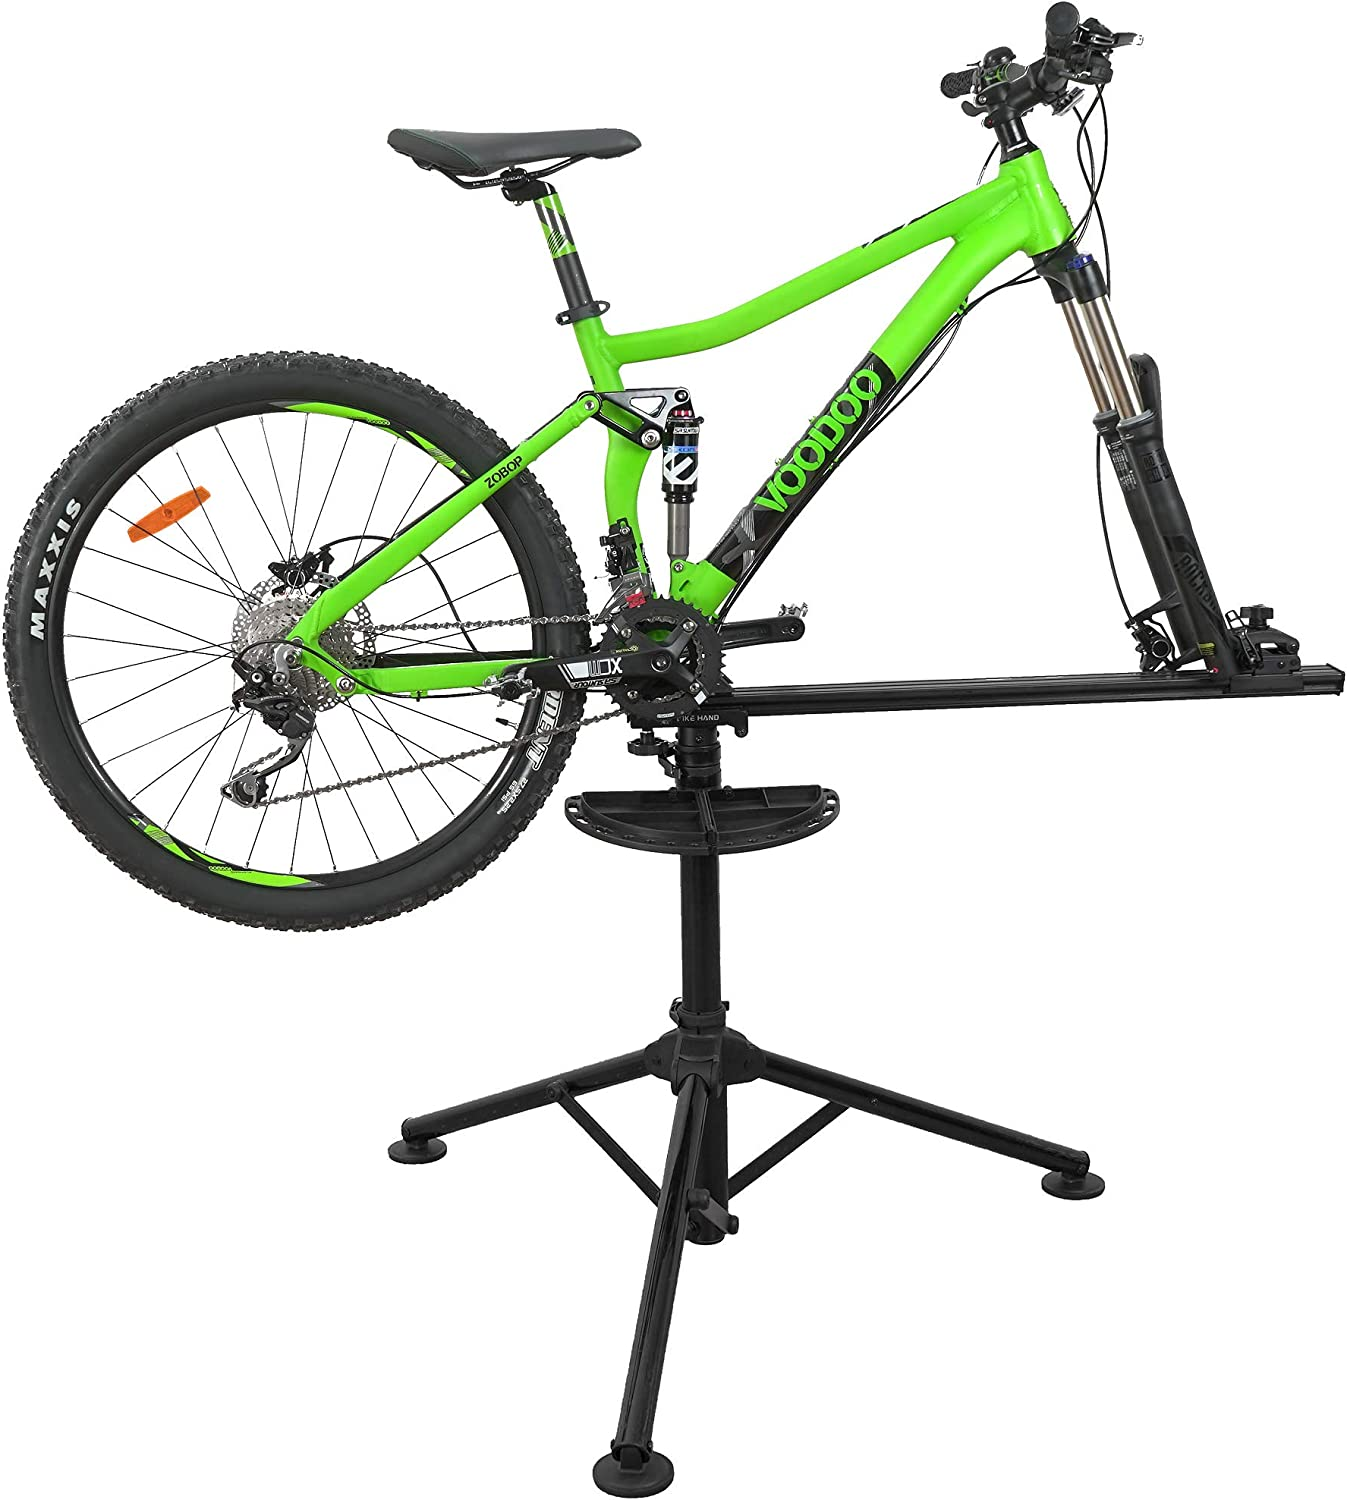 Best Bike Repair Stand- BIKEHAND Bicycle Repair Mechanics Workstand